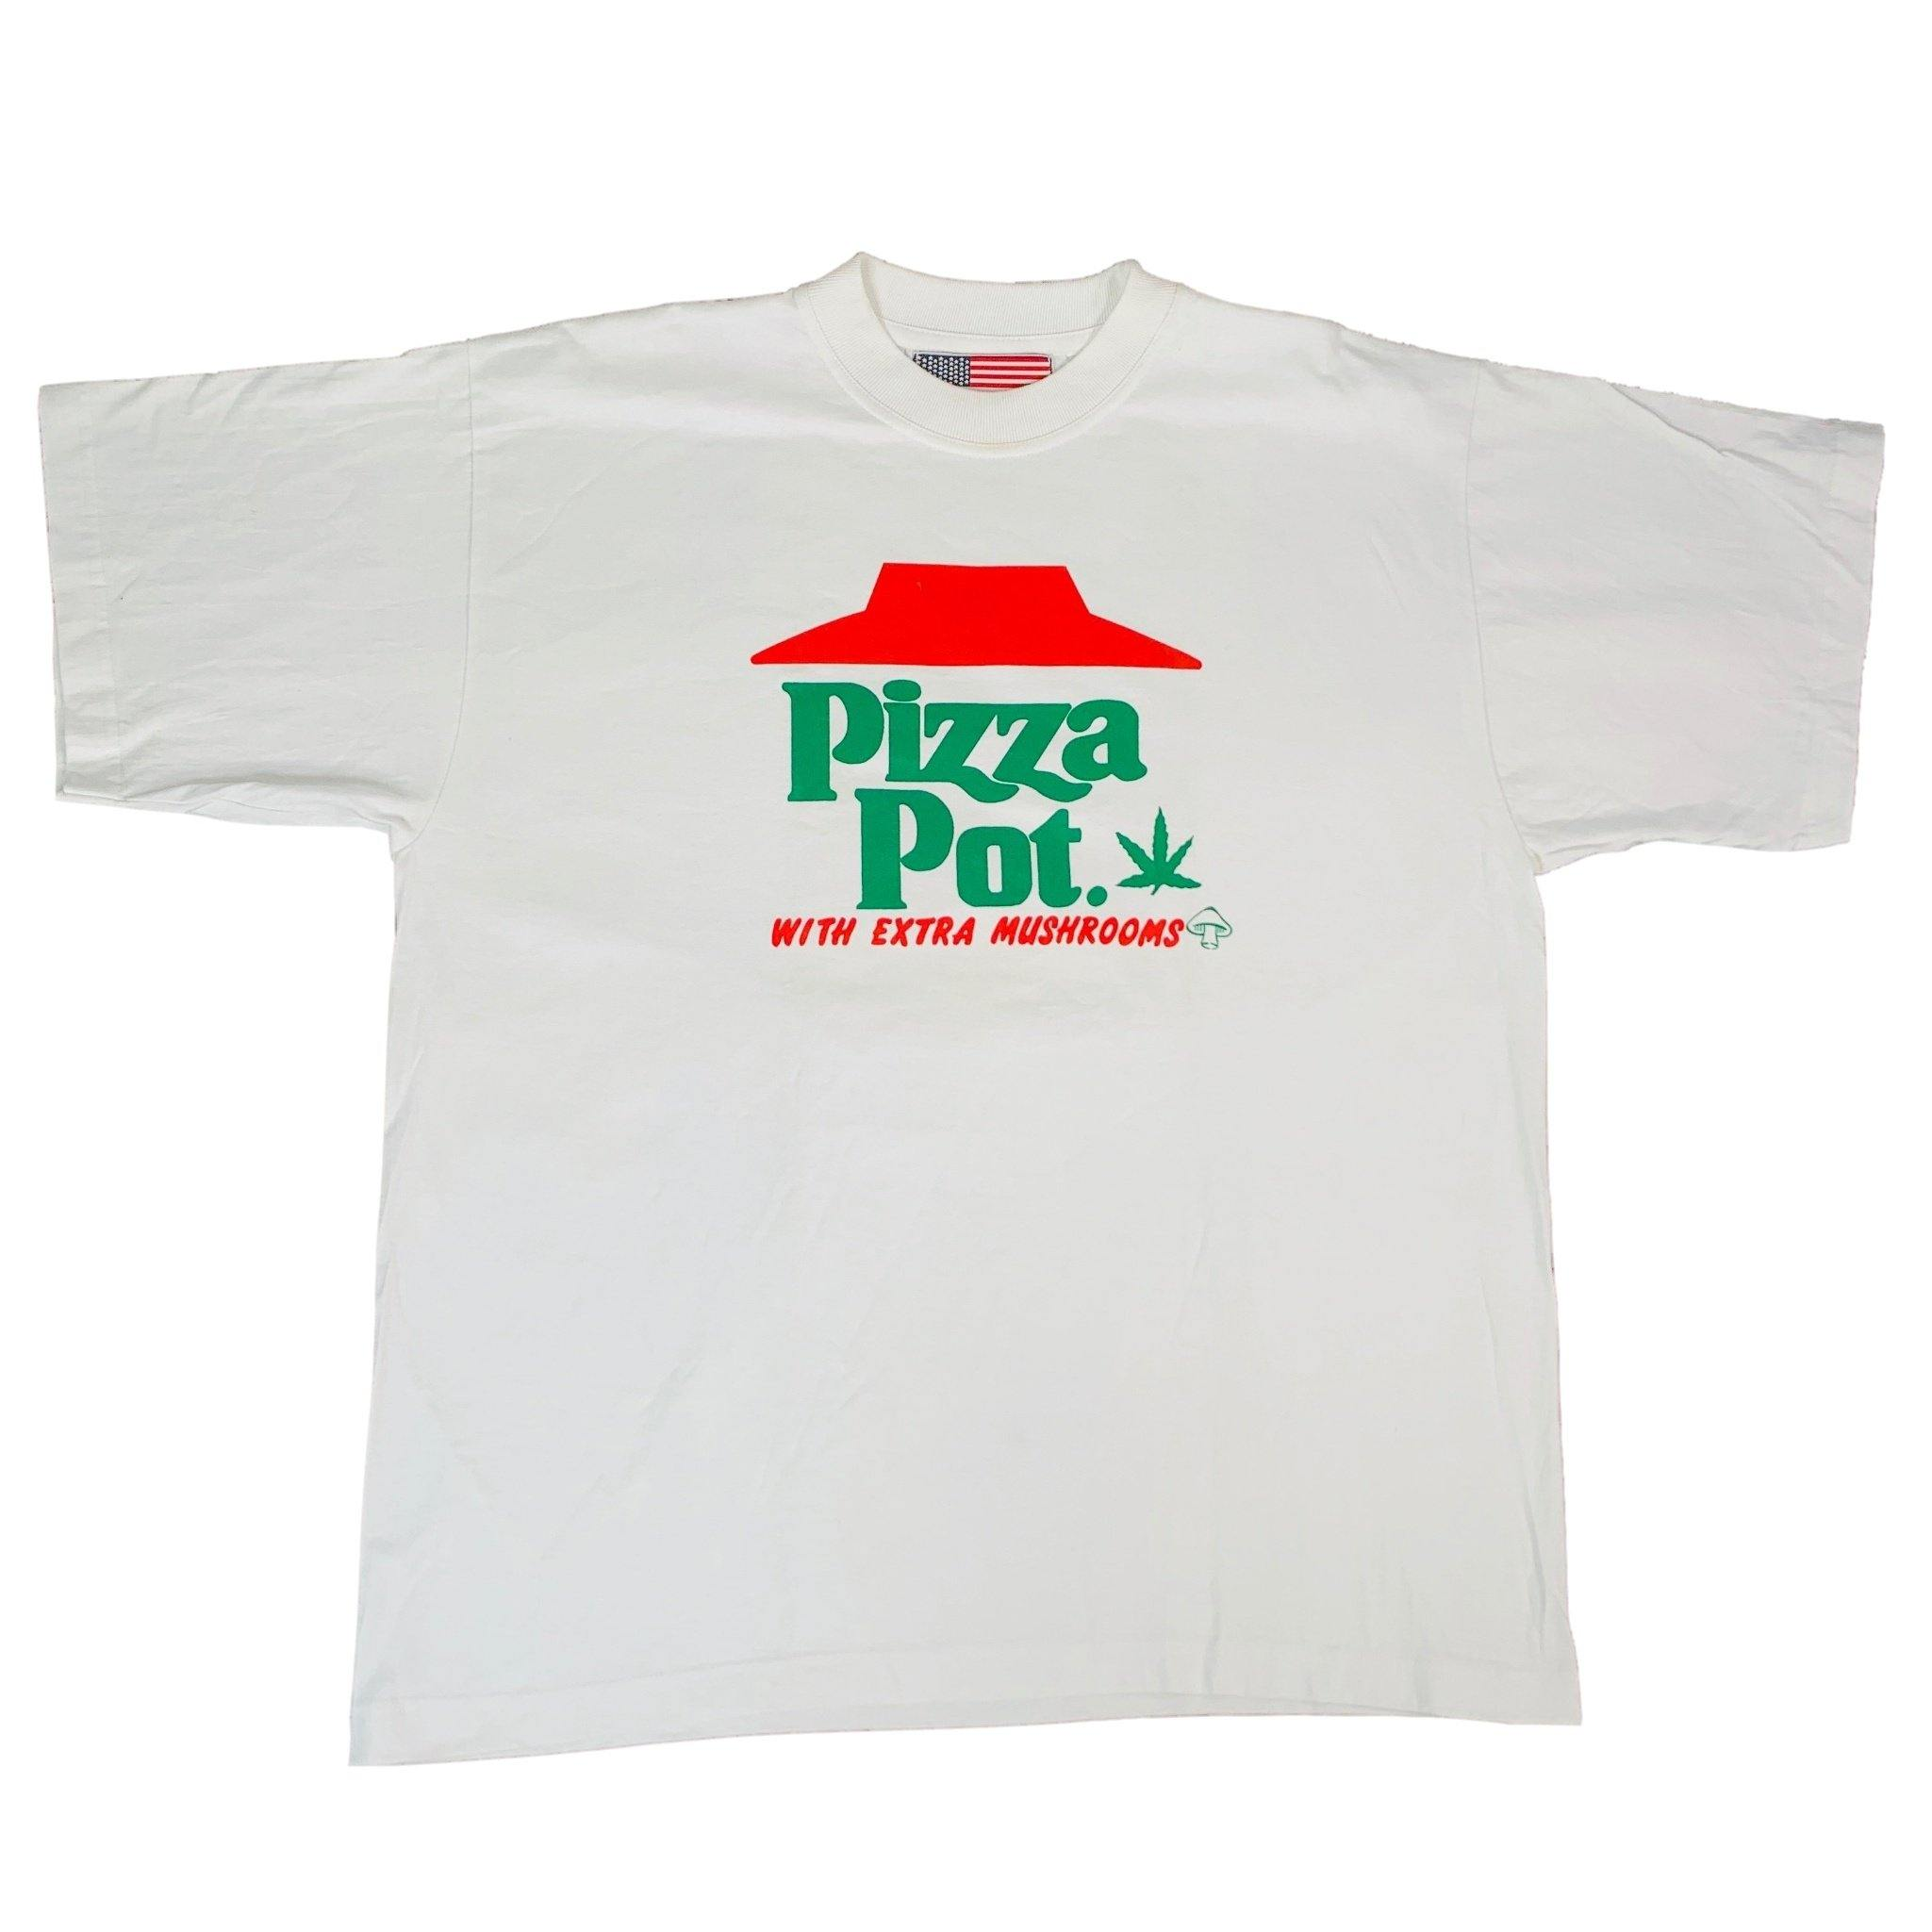 "Vintage Pizza Pot ""With Extra Mushrooms"" T-Shirt"